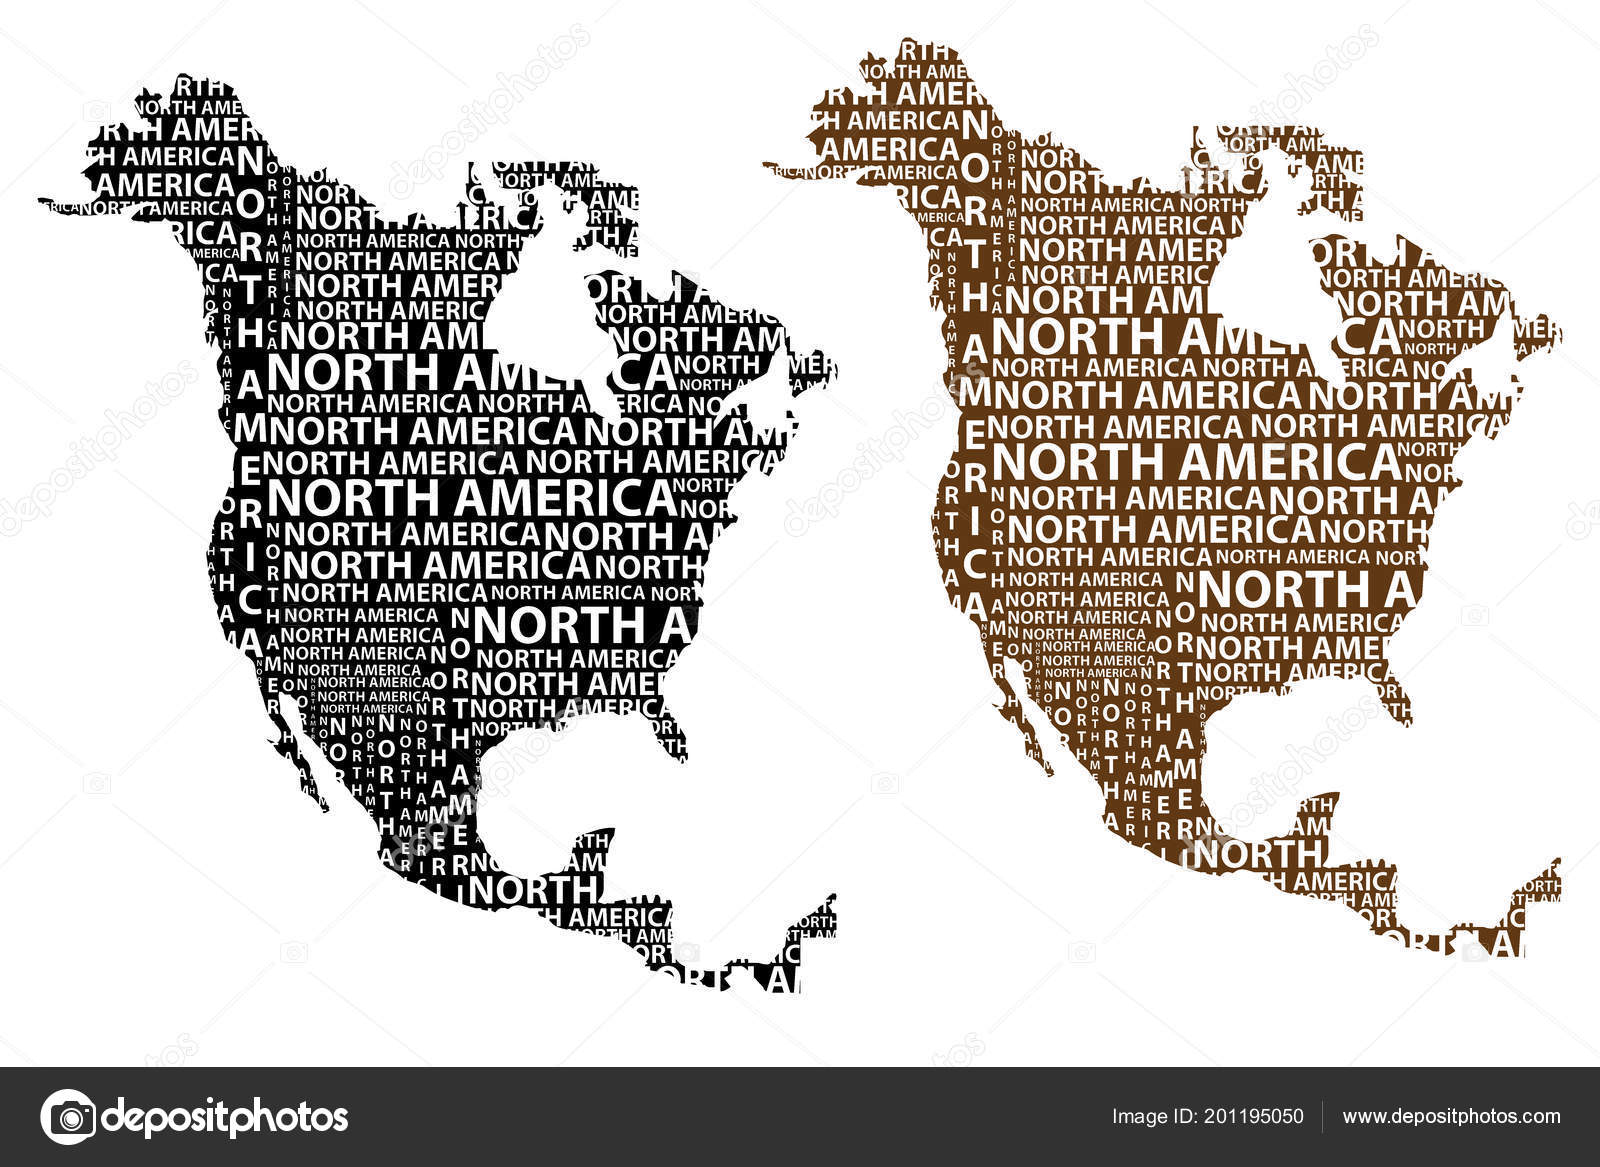 Sketch North America Letter Text Continent North America ... on map of ocean sketch, map of hawaii sketch, map of kentucky sketch, map of bahrain sketch, map of new france sketch, africa map sketch, map of caribbean sketch, map of hong kong sketch, map of zambia sketch, map of world sketch, map of new jersey sketch, usa map sketch, map of mauritius sketch,